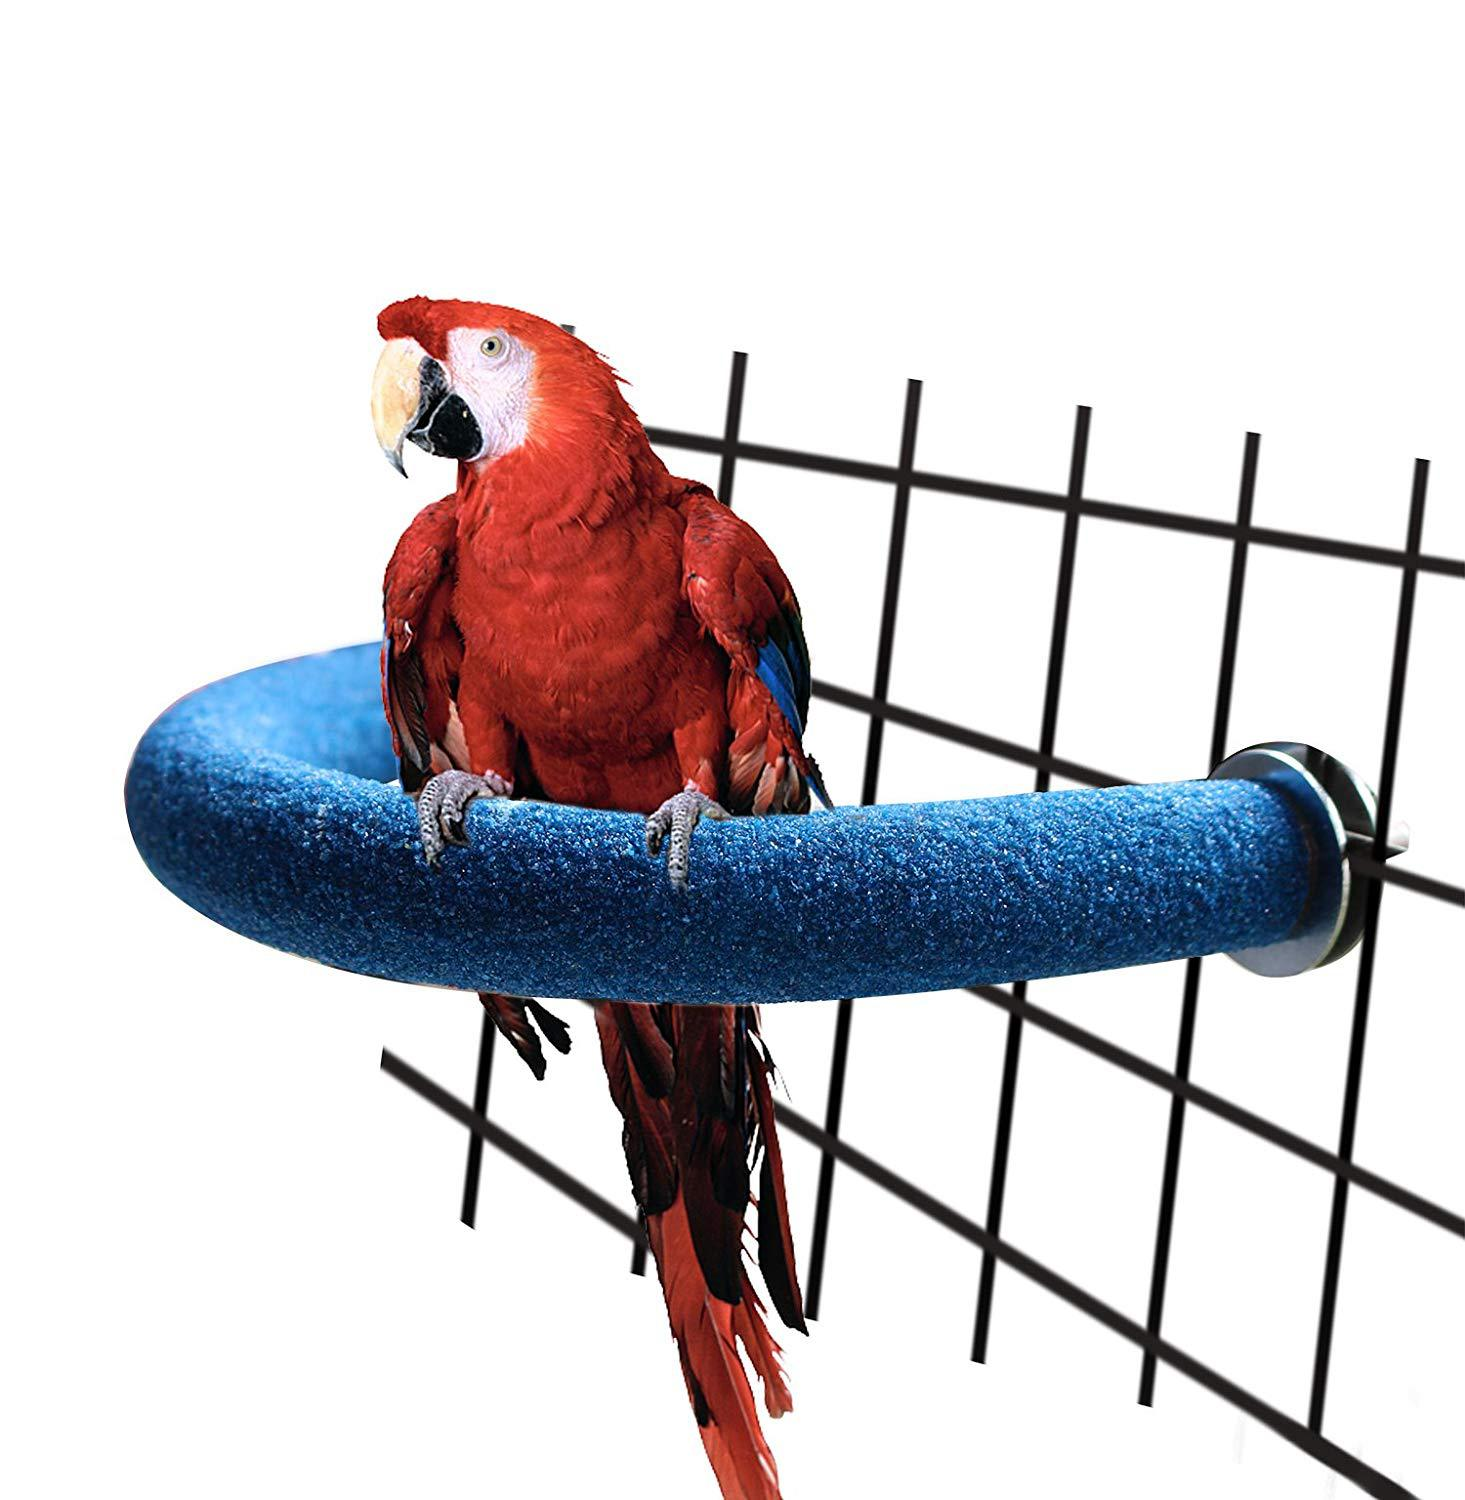 Large bird toys chew parrot grinding colored emery stand cage cockatiel-paraODUS